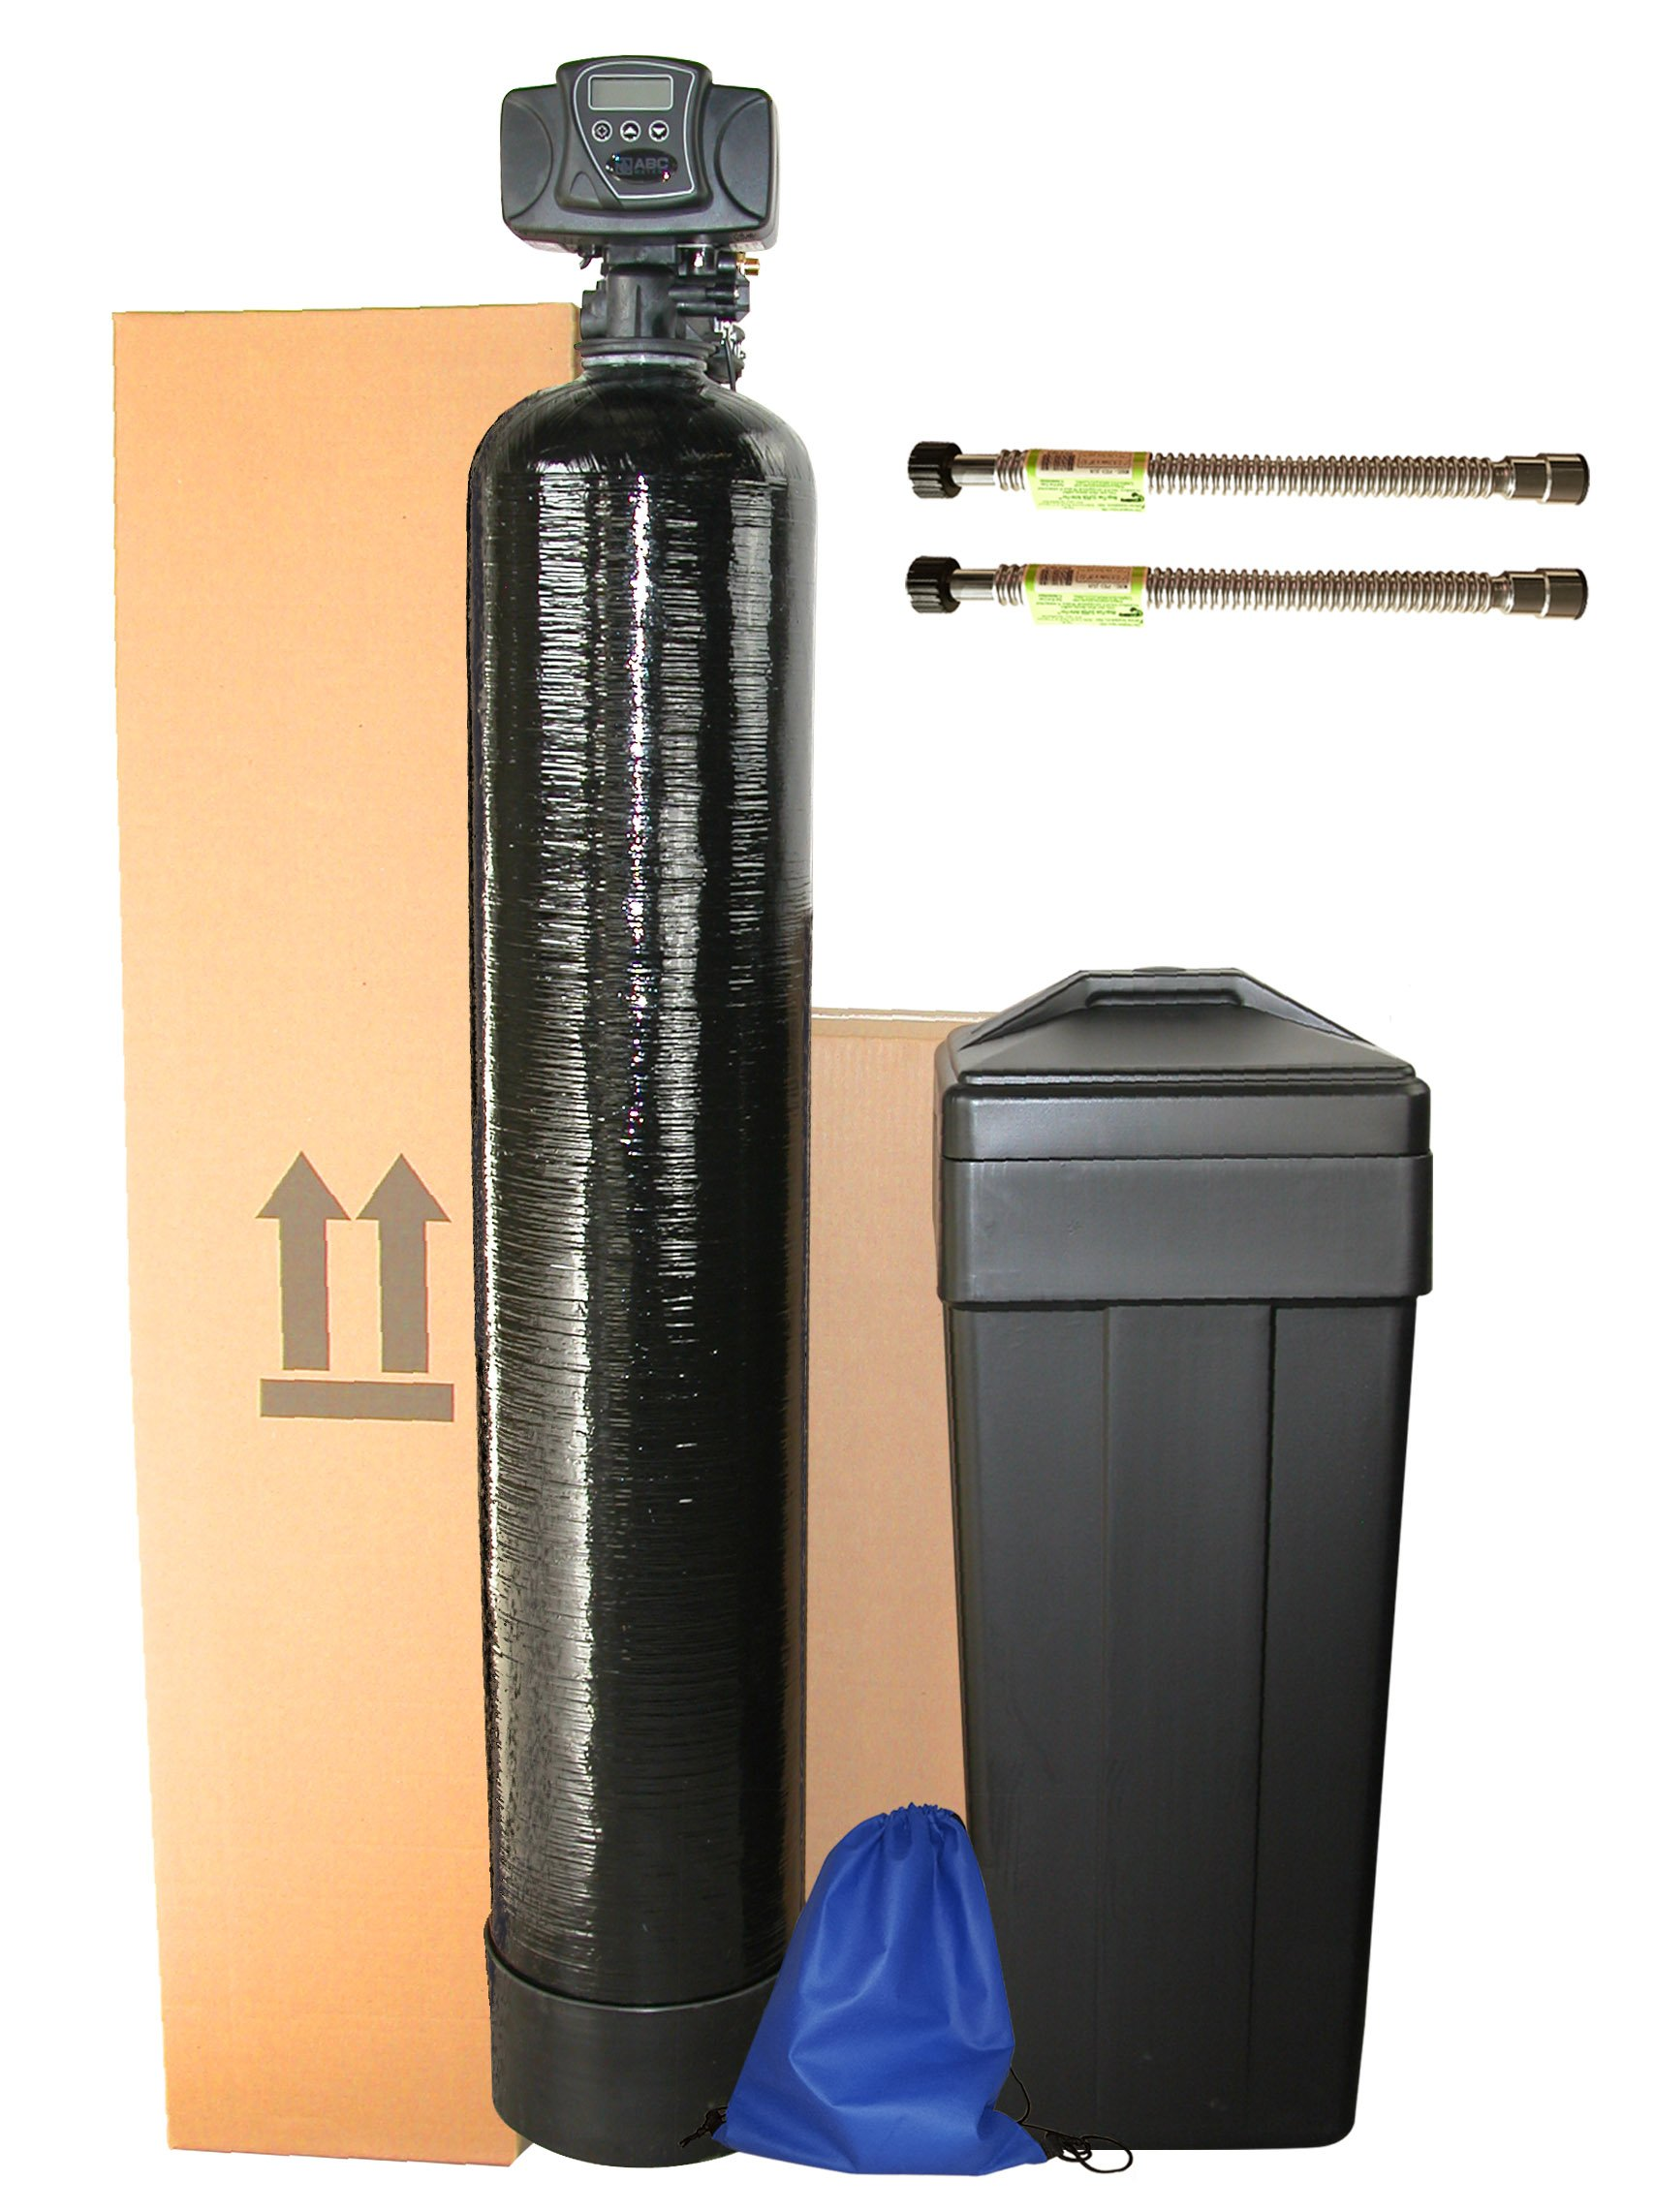 ABCwaters Built Fleck 5600sxt 48,000 Water Softener w/ UPGRADED 10% Resin + Hardness test + Install Kit + 2 Stainless Steel Connectors